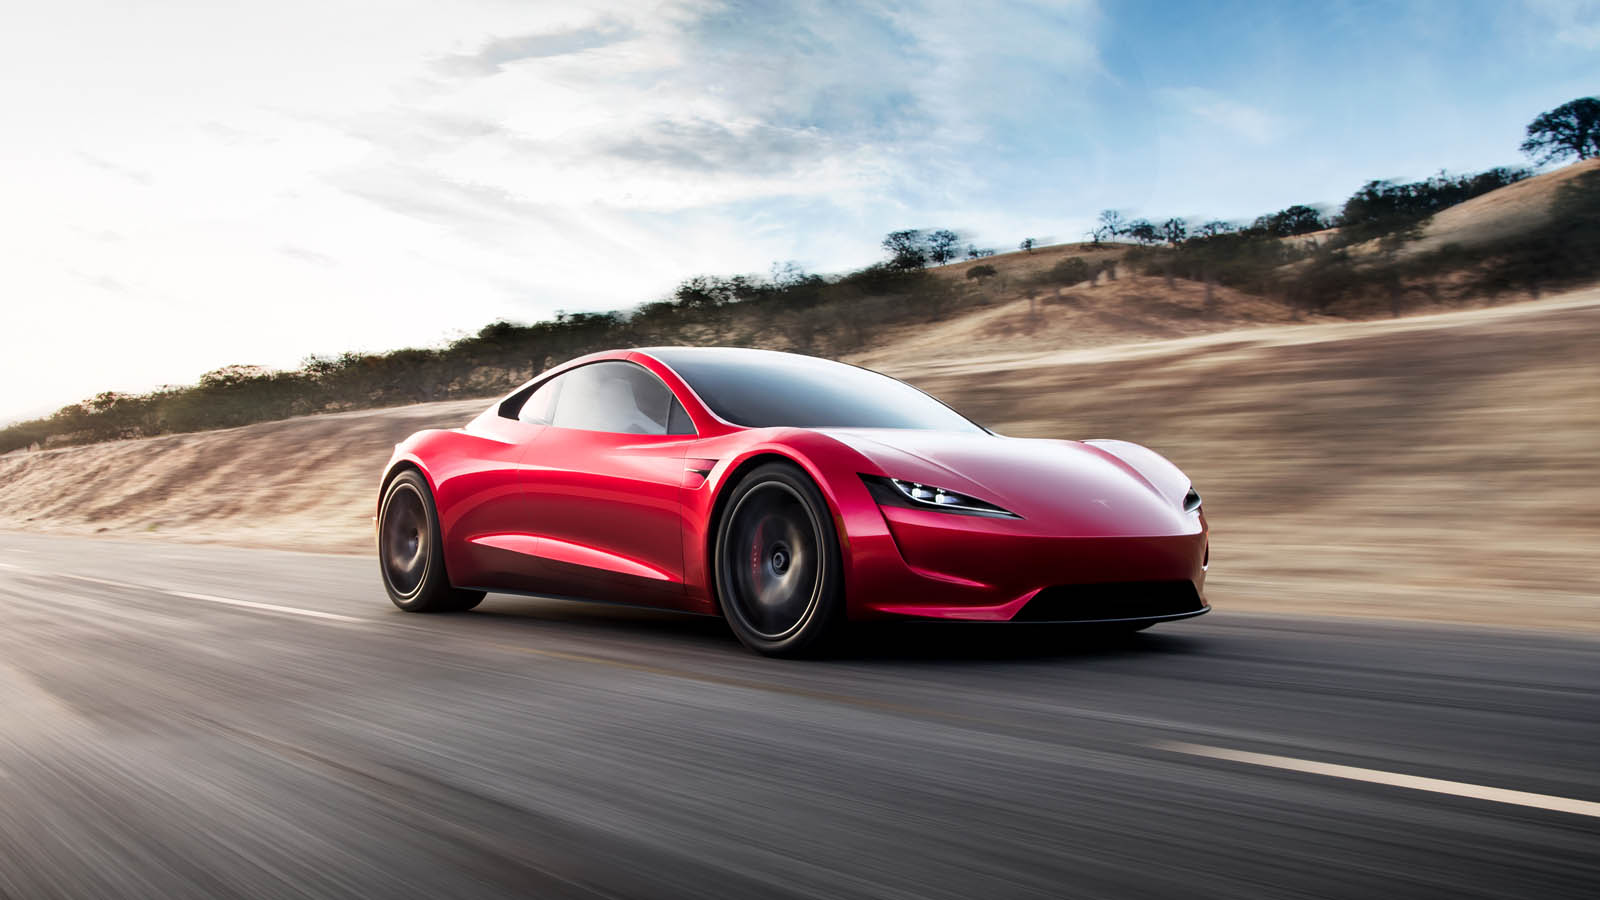 tesla roadster ii 2020 la voiture la plus rapide du monde french driver. Black Bedroom Furniture Sets. Home Design Ideas